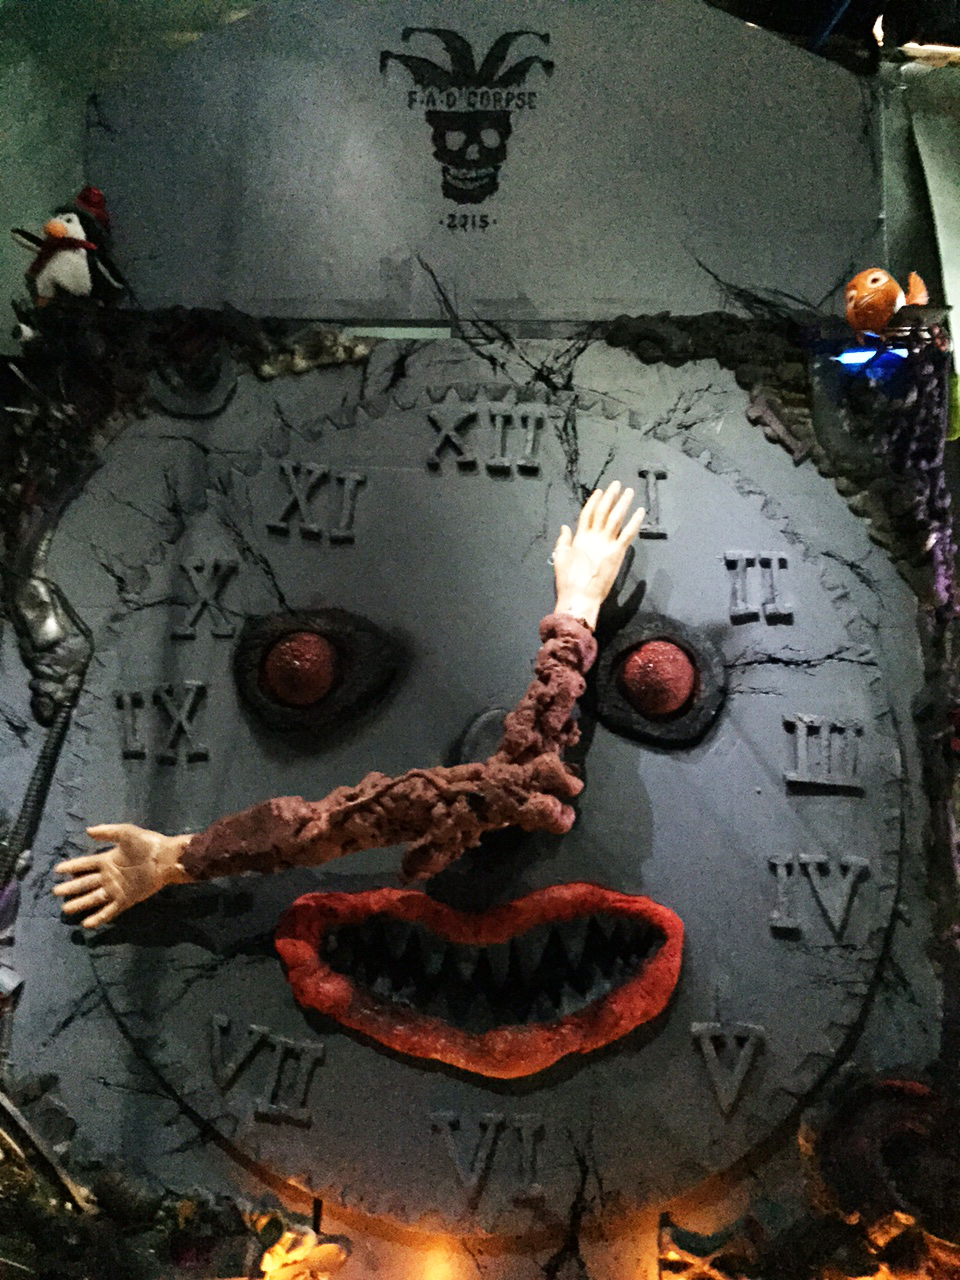 FAO CORPSE CLOCK, 96 X 60 X 40in, mixed media, 2015, front view (detail )